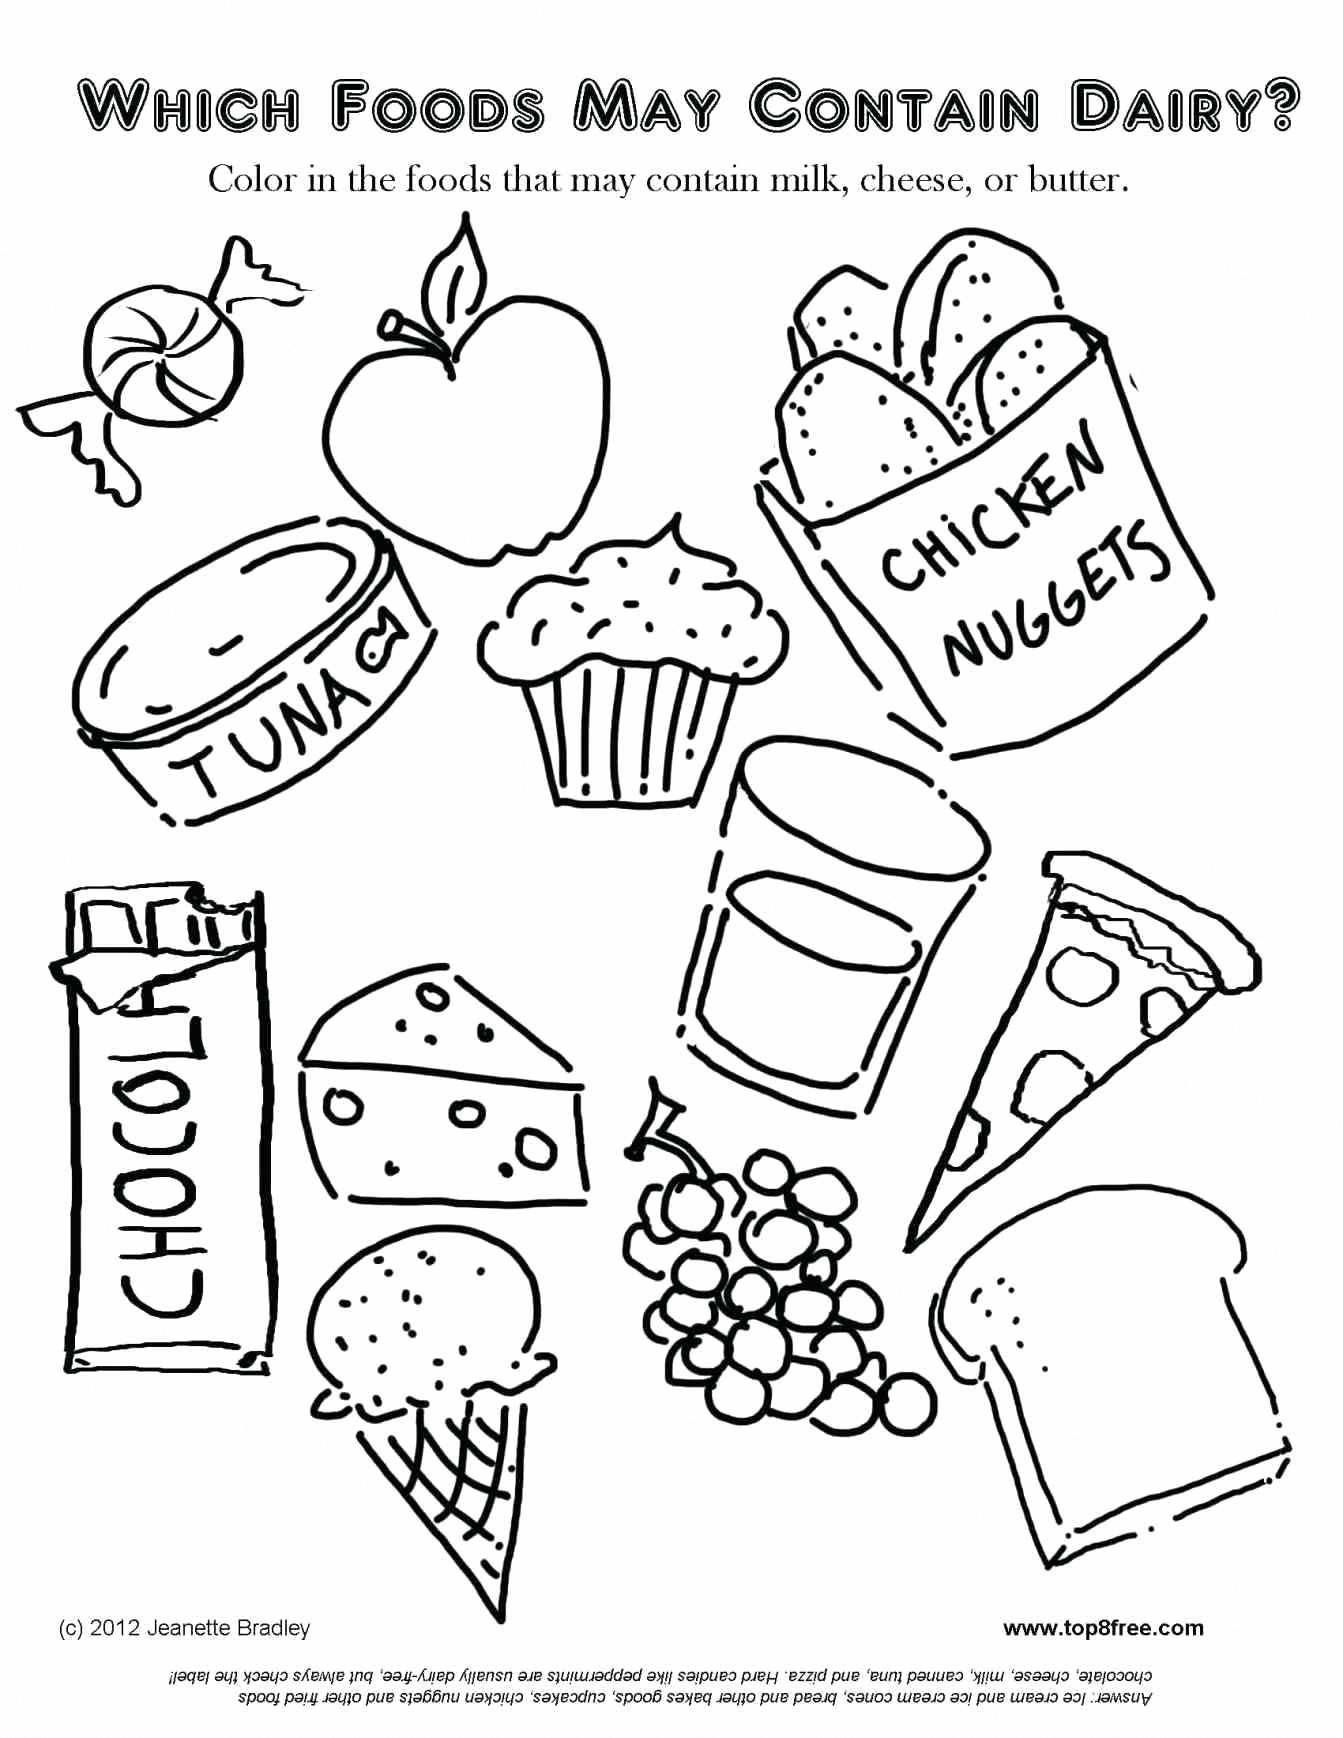 Nutrition Facts Software Food Coloring Pages Free Kids Coloring Pages Coloring Pages For Kids